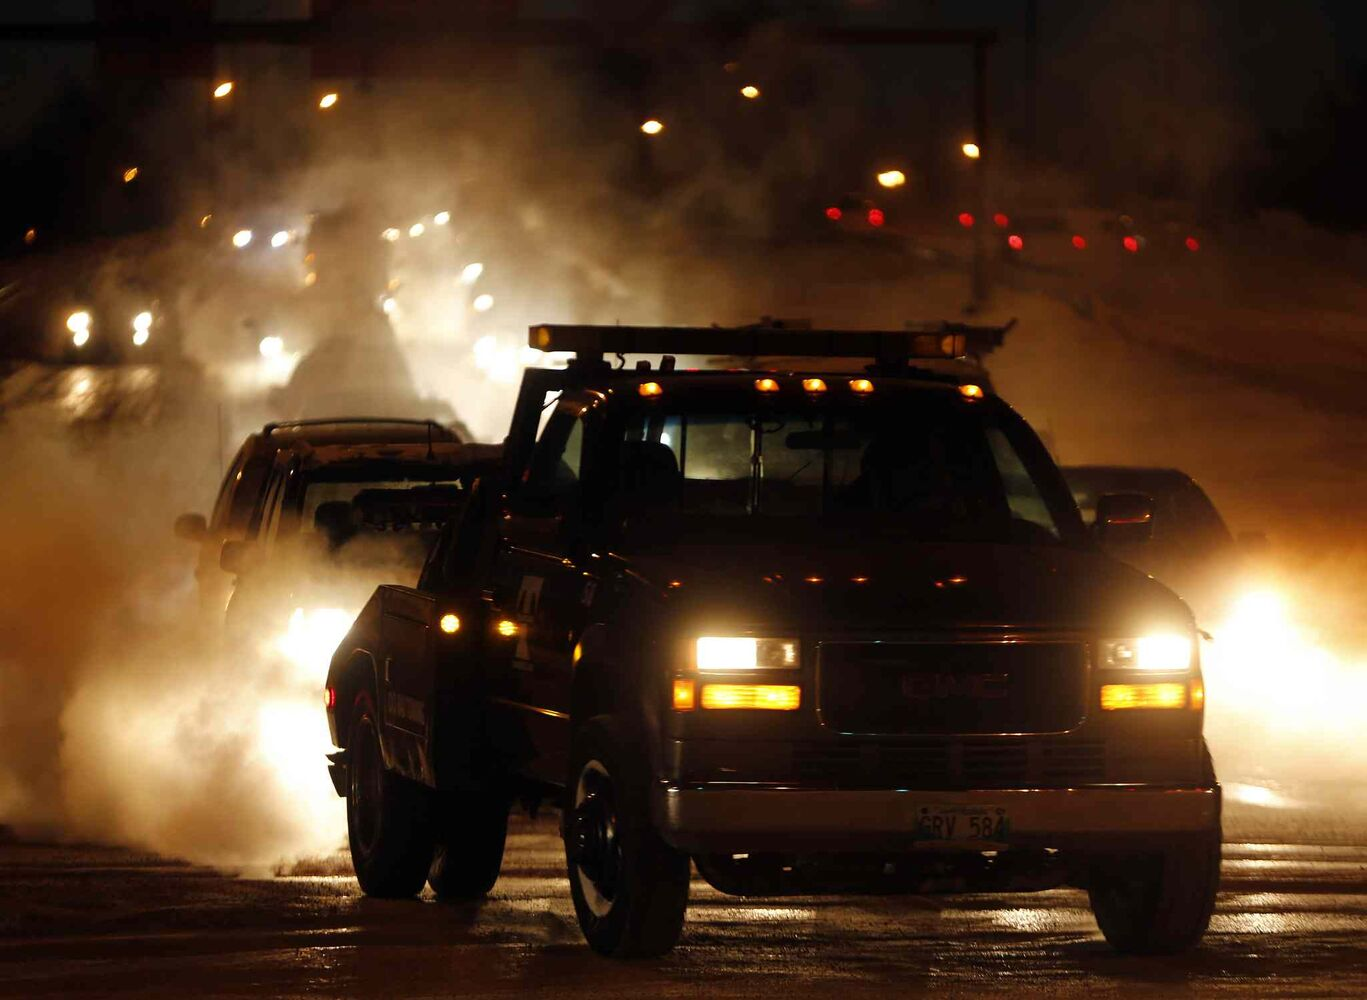 Tow trucks are in high demand and are out early to help as exhaust fog causes visibility problems for drivers on Chief Peguis Trail at Main St. Tuesday in Winnipeg. (KEN GIGLIOTTI / WINNIPEG FREE PRESS)